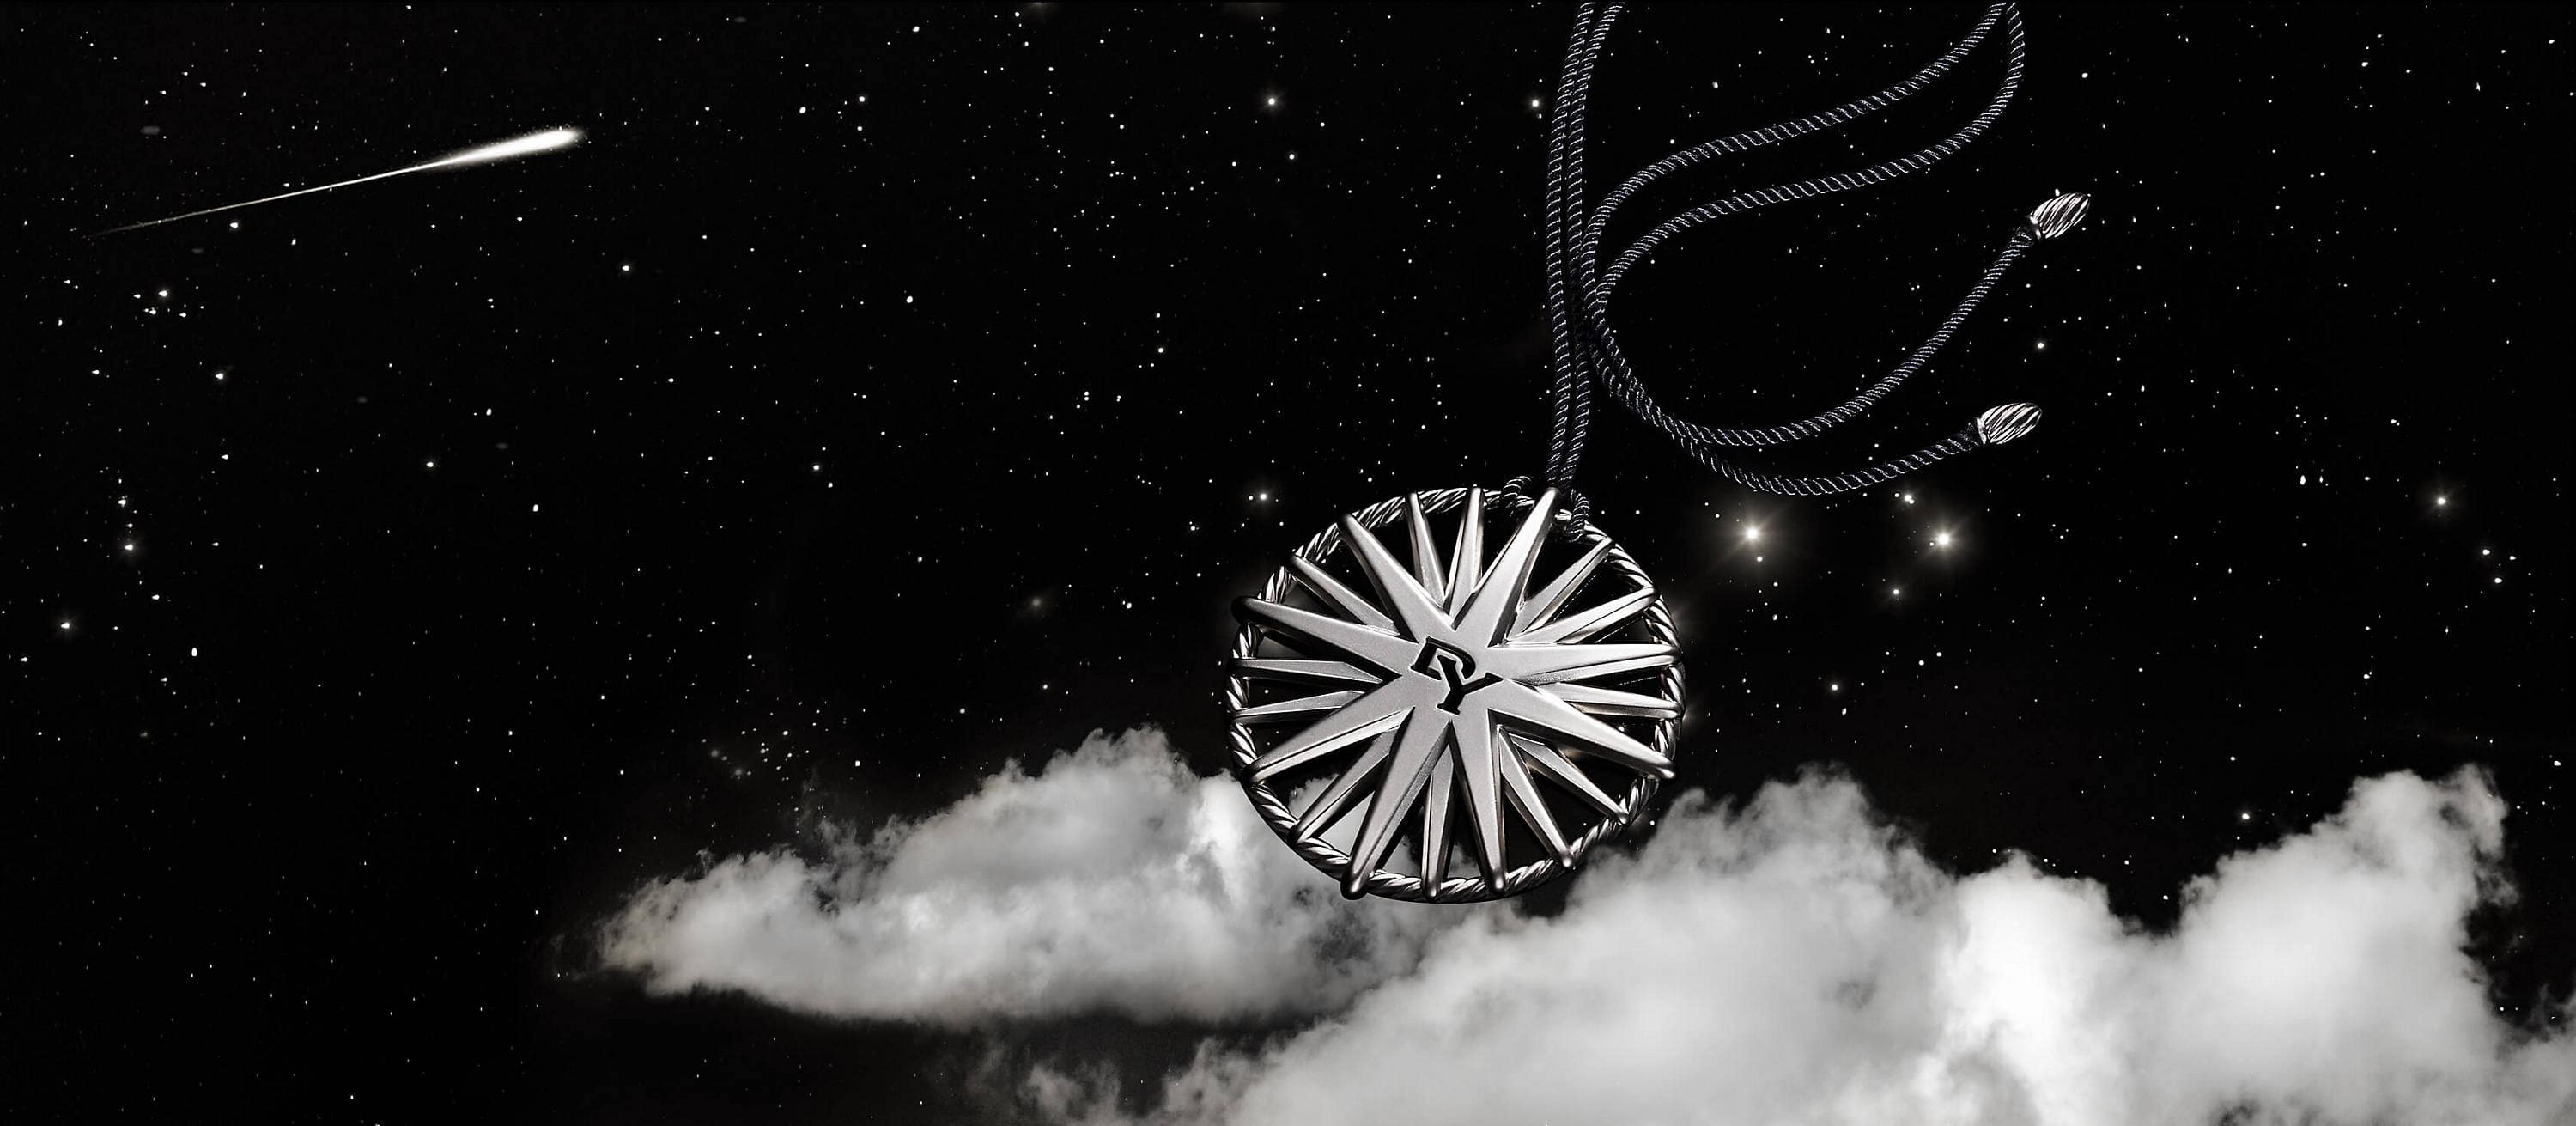 A color photo shows a silver star-shaped ornament strung on a black cord floating on a white cloud in a starry night sky.